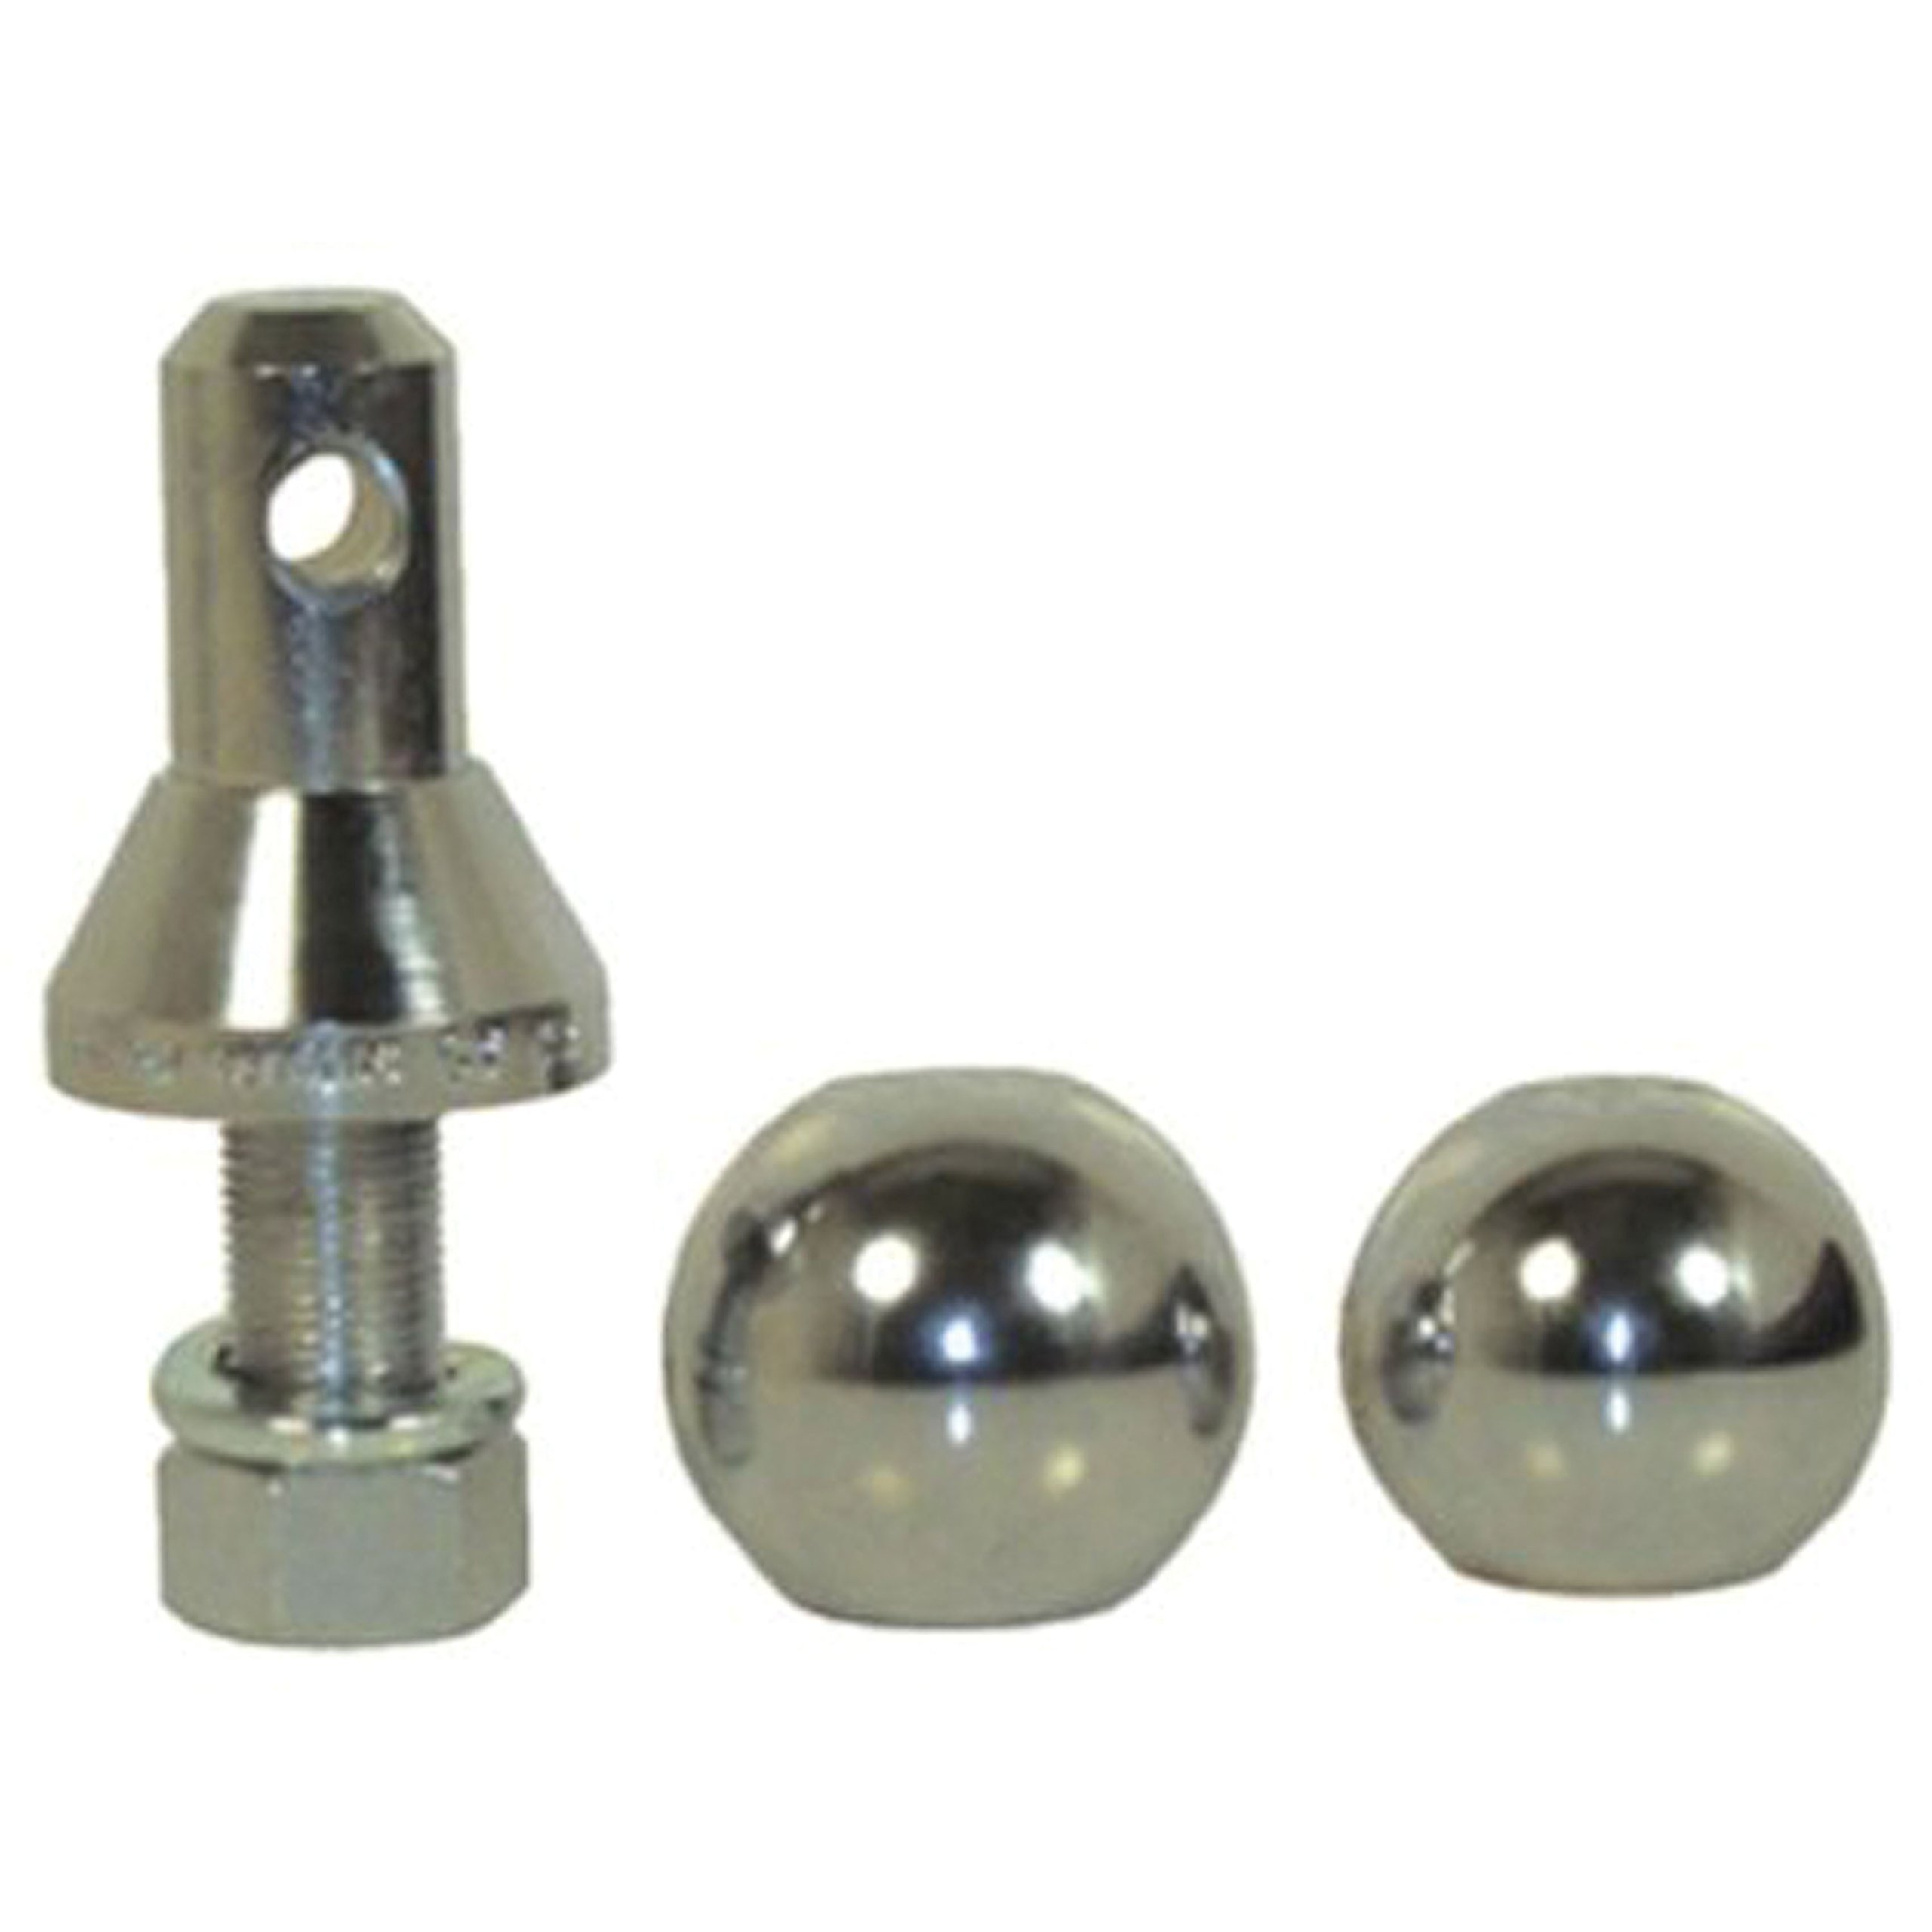 Convert-A-Ball 900B Nickel-Plated Shank with 3 Balls - 1''